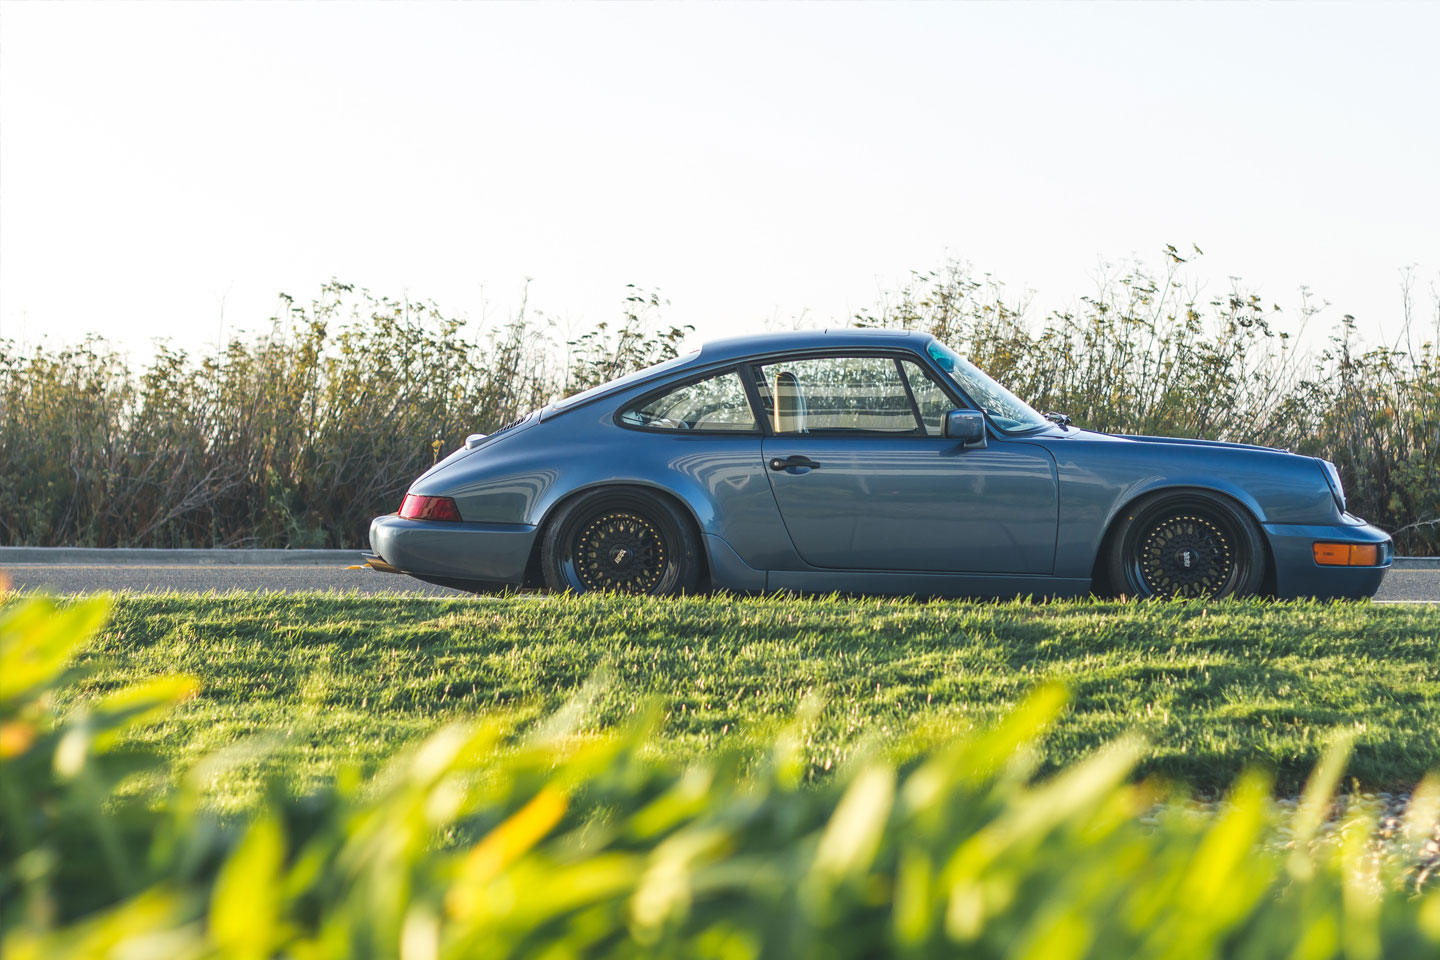 Classic Car Values: 5 Online Tools to Estimate What Classic Cars Are ...